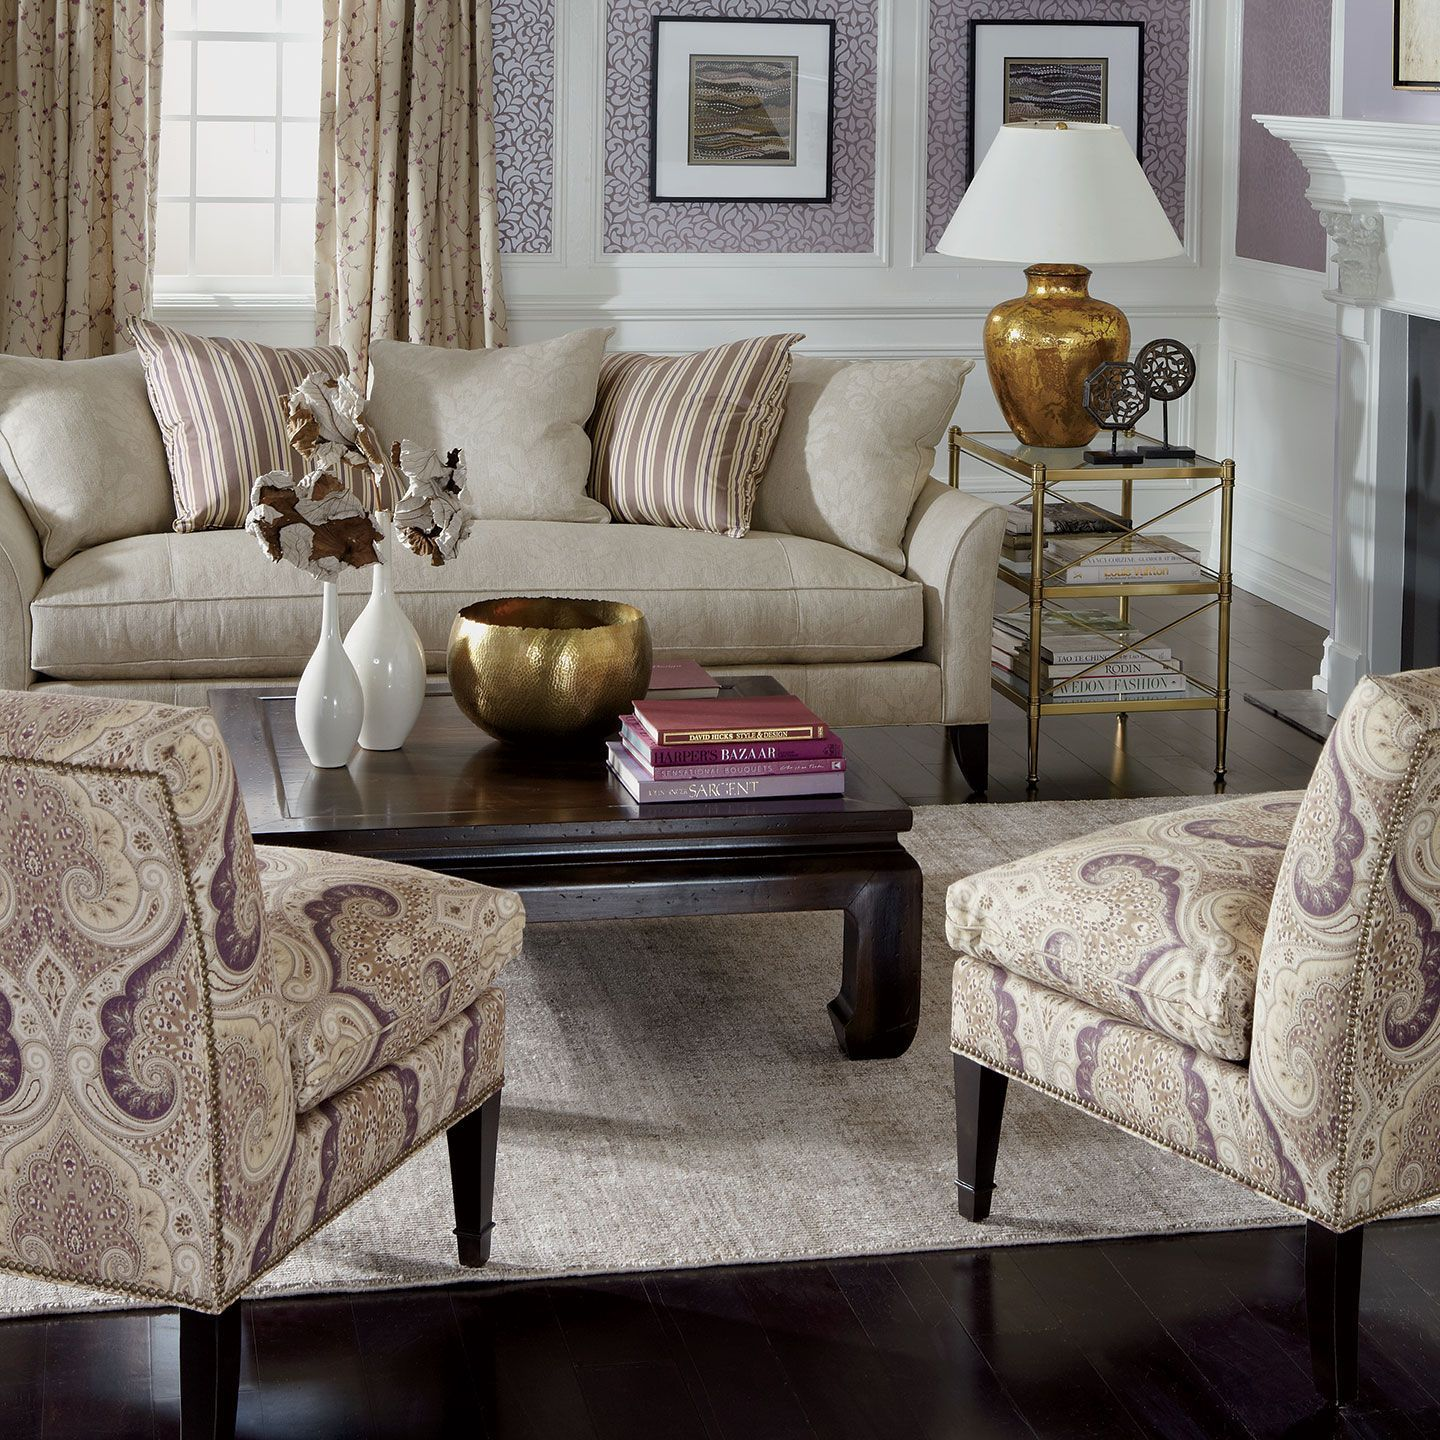 Ethan Allen Love This Living Room Sofa Is Chadwick And Chairs Are